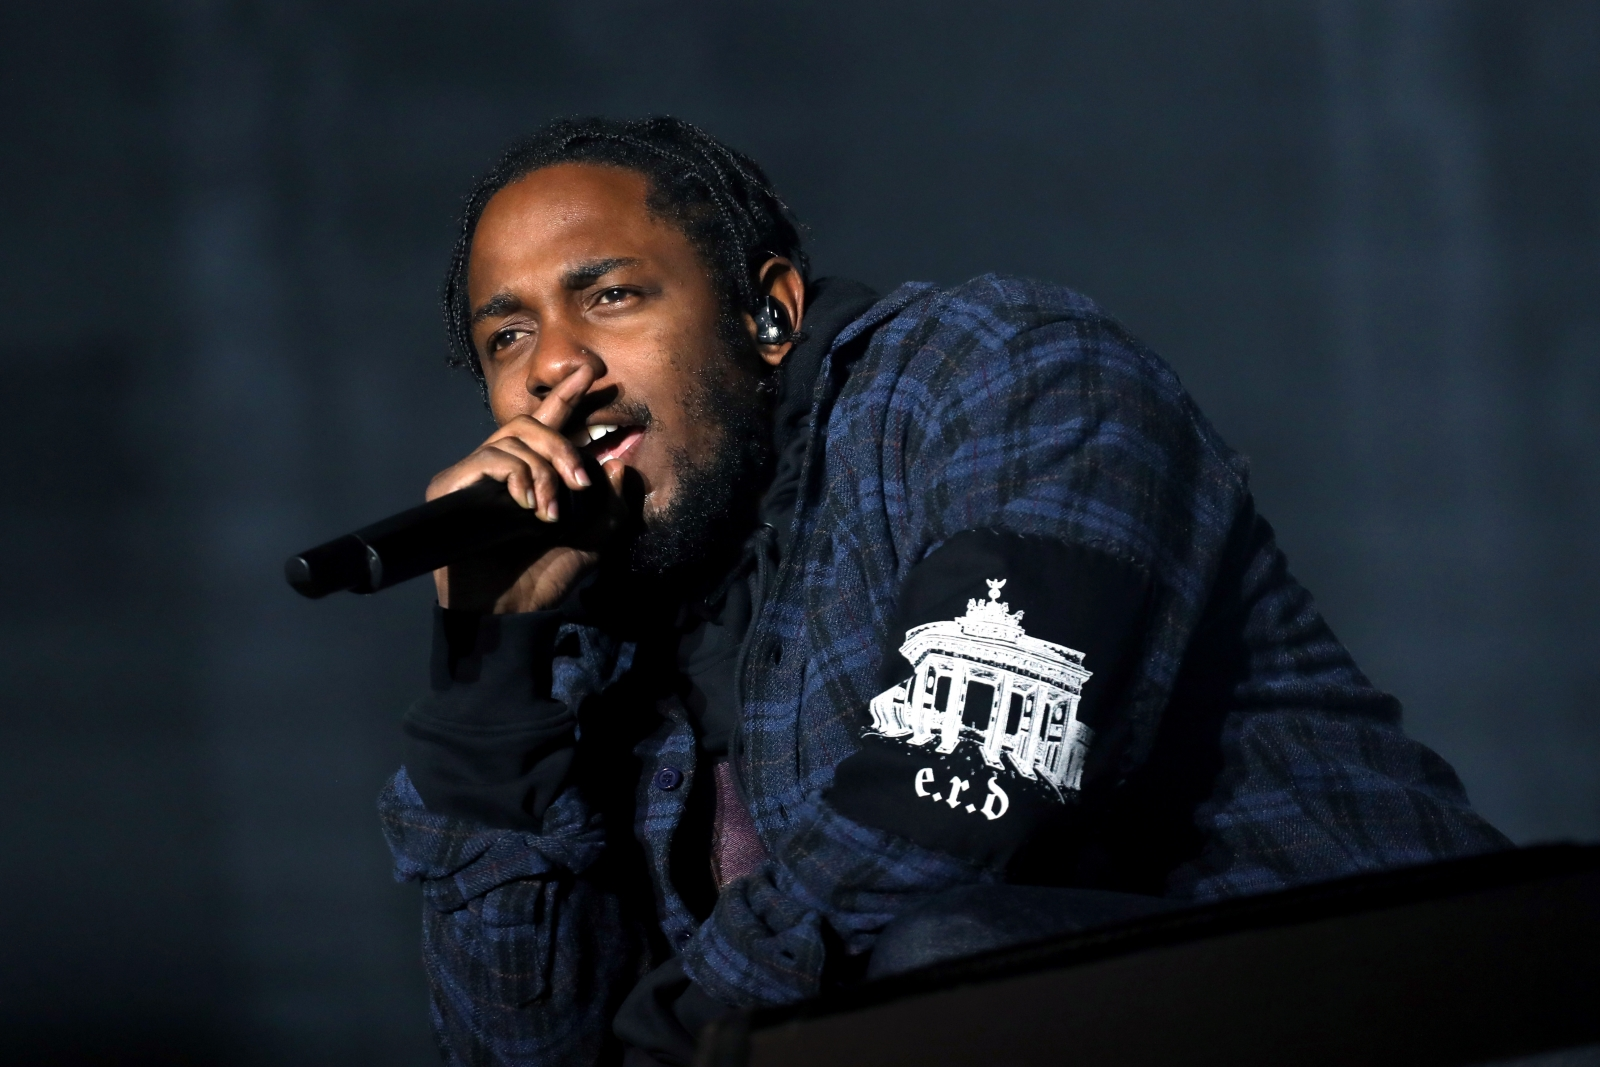 Does kendrick lamar slam big sean again in biblical inspired humble music video Kendrick lamar swimming pools music video download